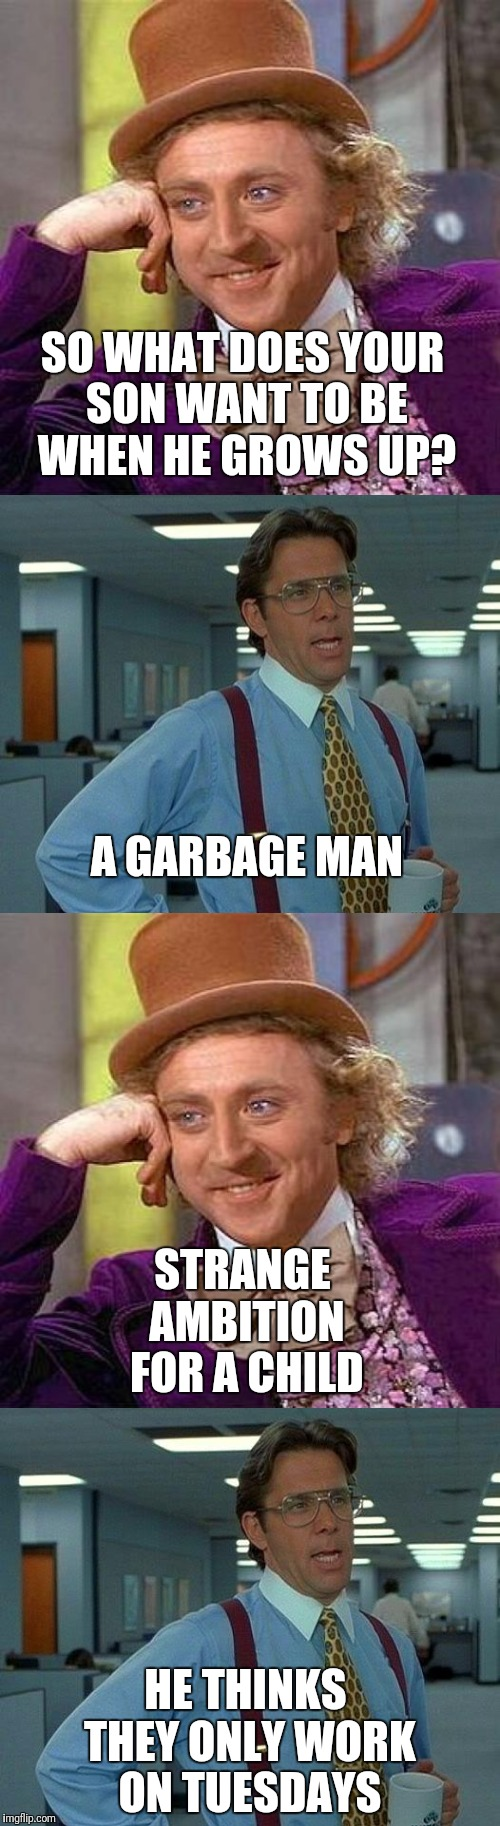 My son's dream job | SO WHAT DOES YOUR SON WANT TO BE WHEN HE GROWS UP? HE THINKS THEY ONLY WORK ON TUESDAYS A GARBAGE MAN STRANGE AMBITION FOR A CHILD | image tagged in creepy condescending wonka,that would be great,memes | made w/ Imgflip meme maker